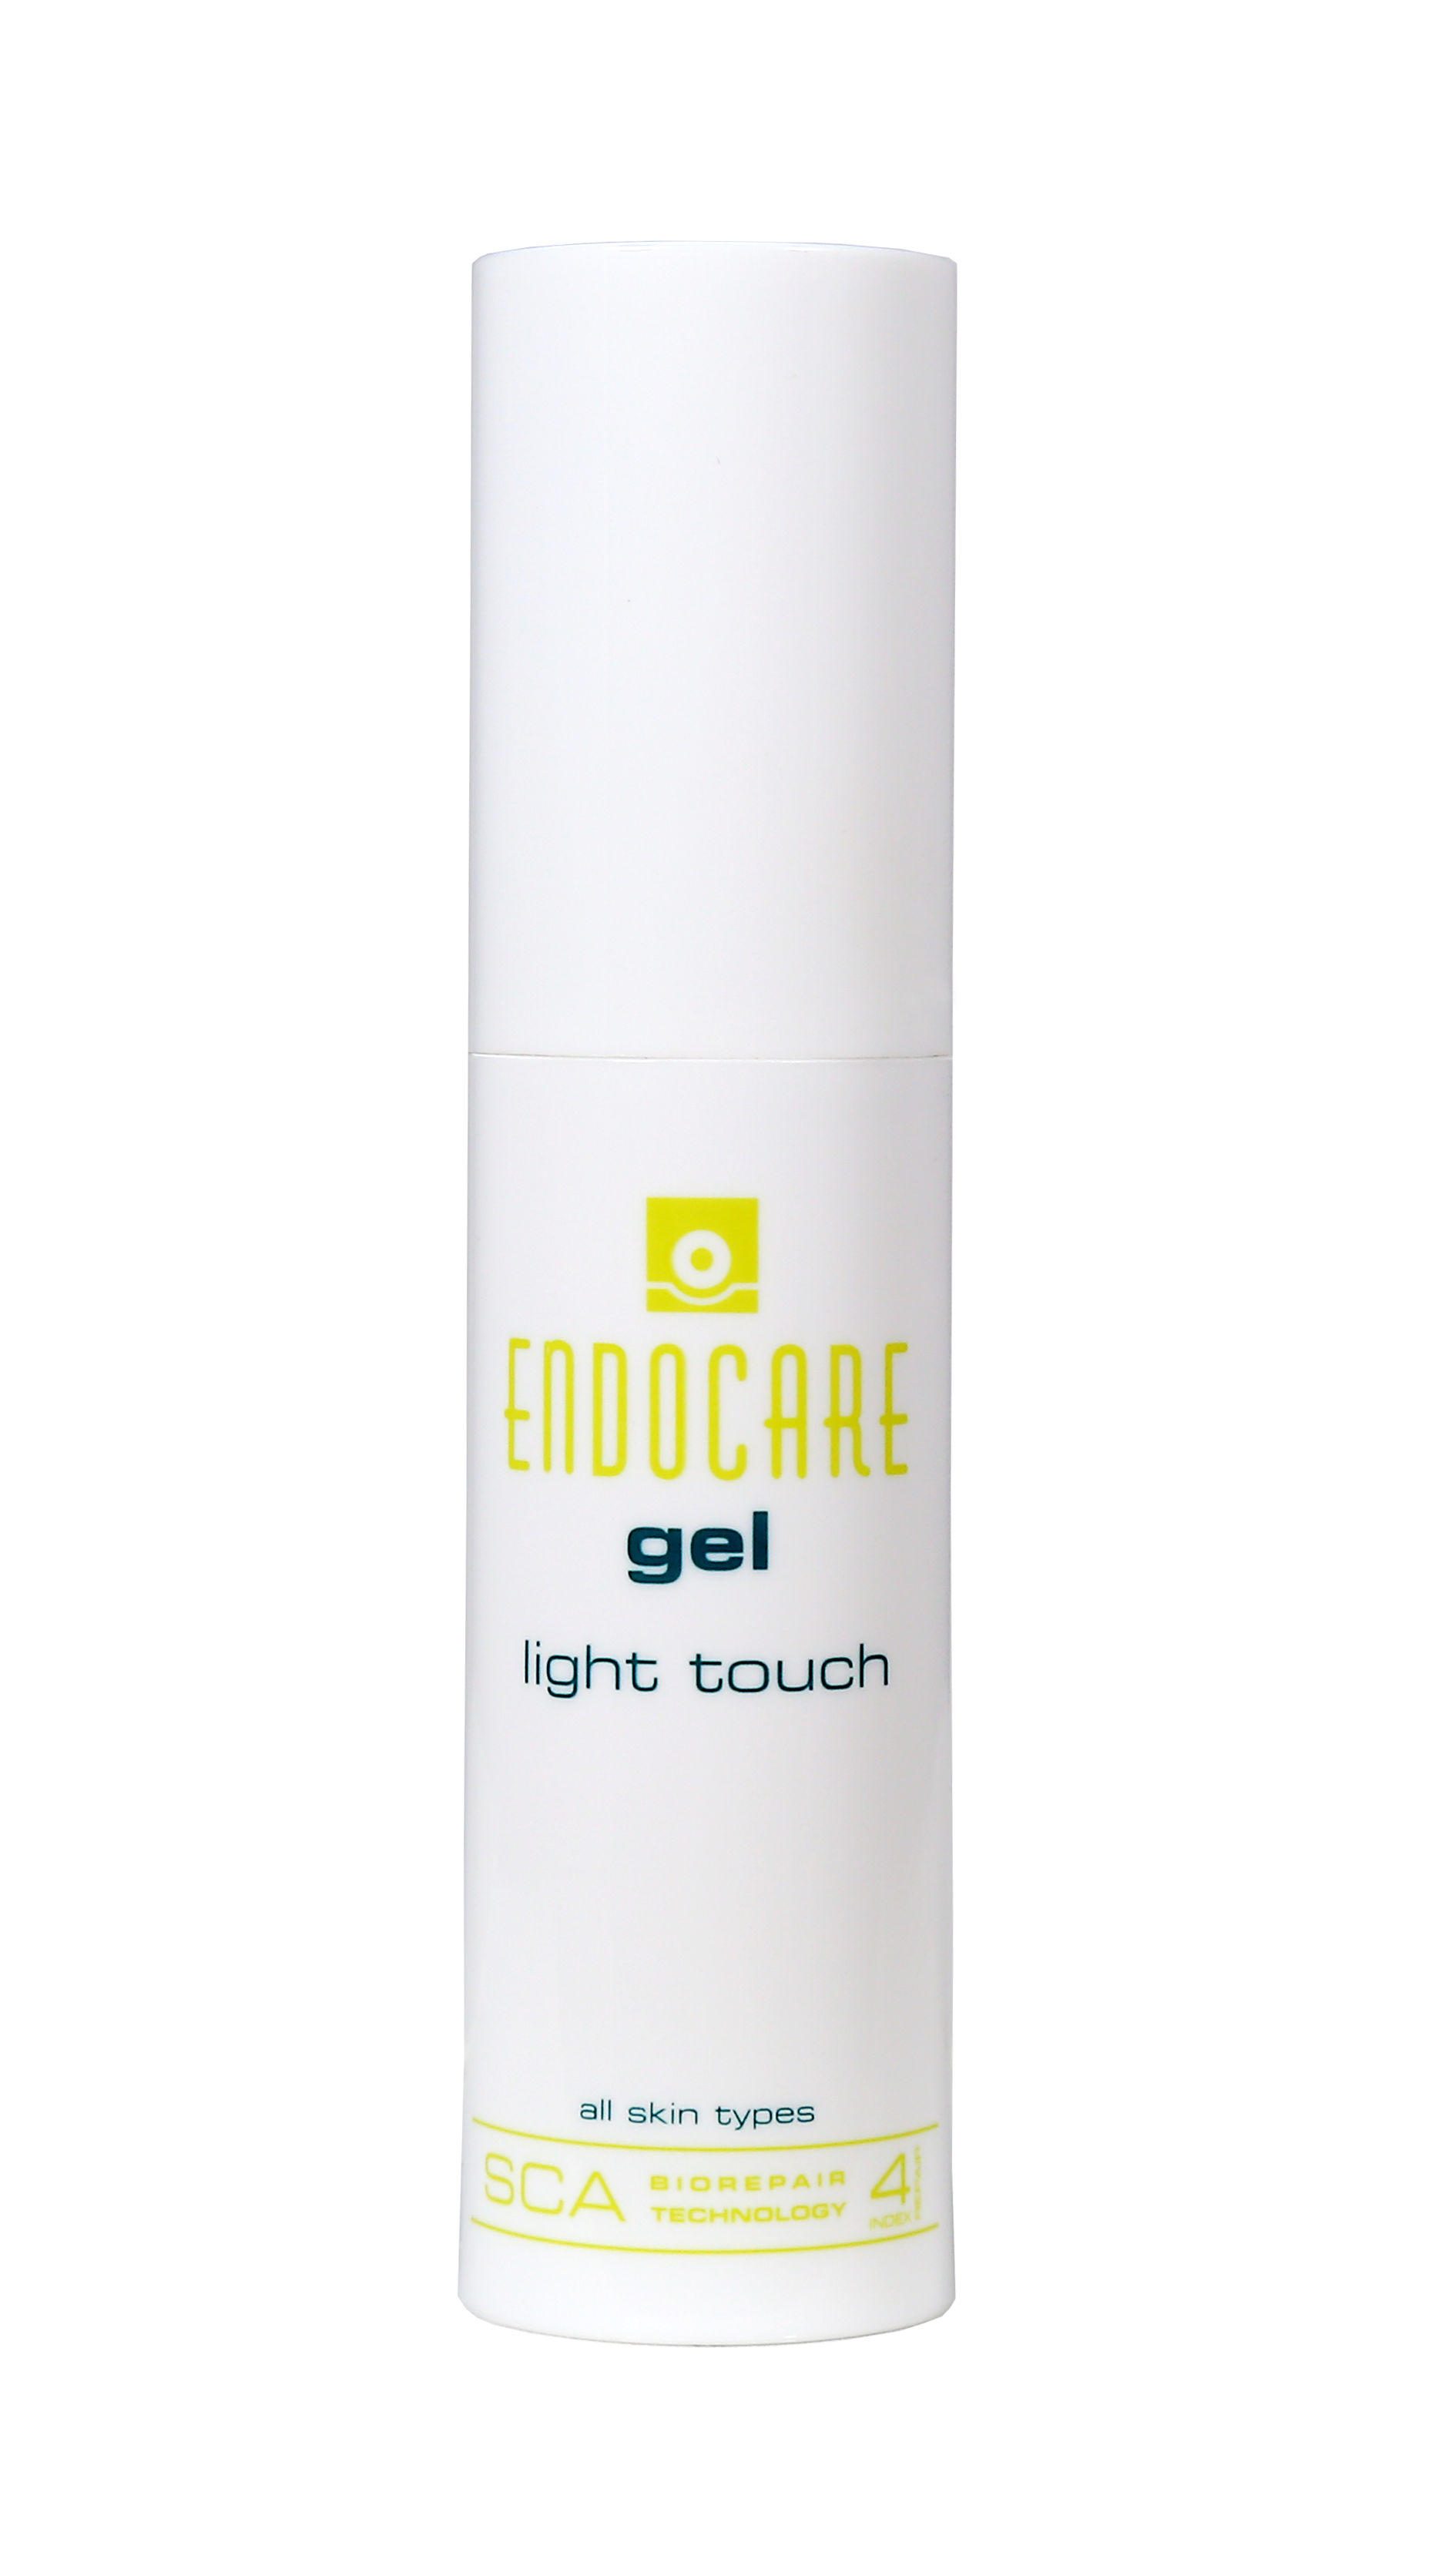 4% SCA GEL LIGHT TOUCH